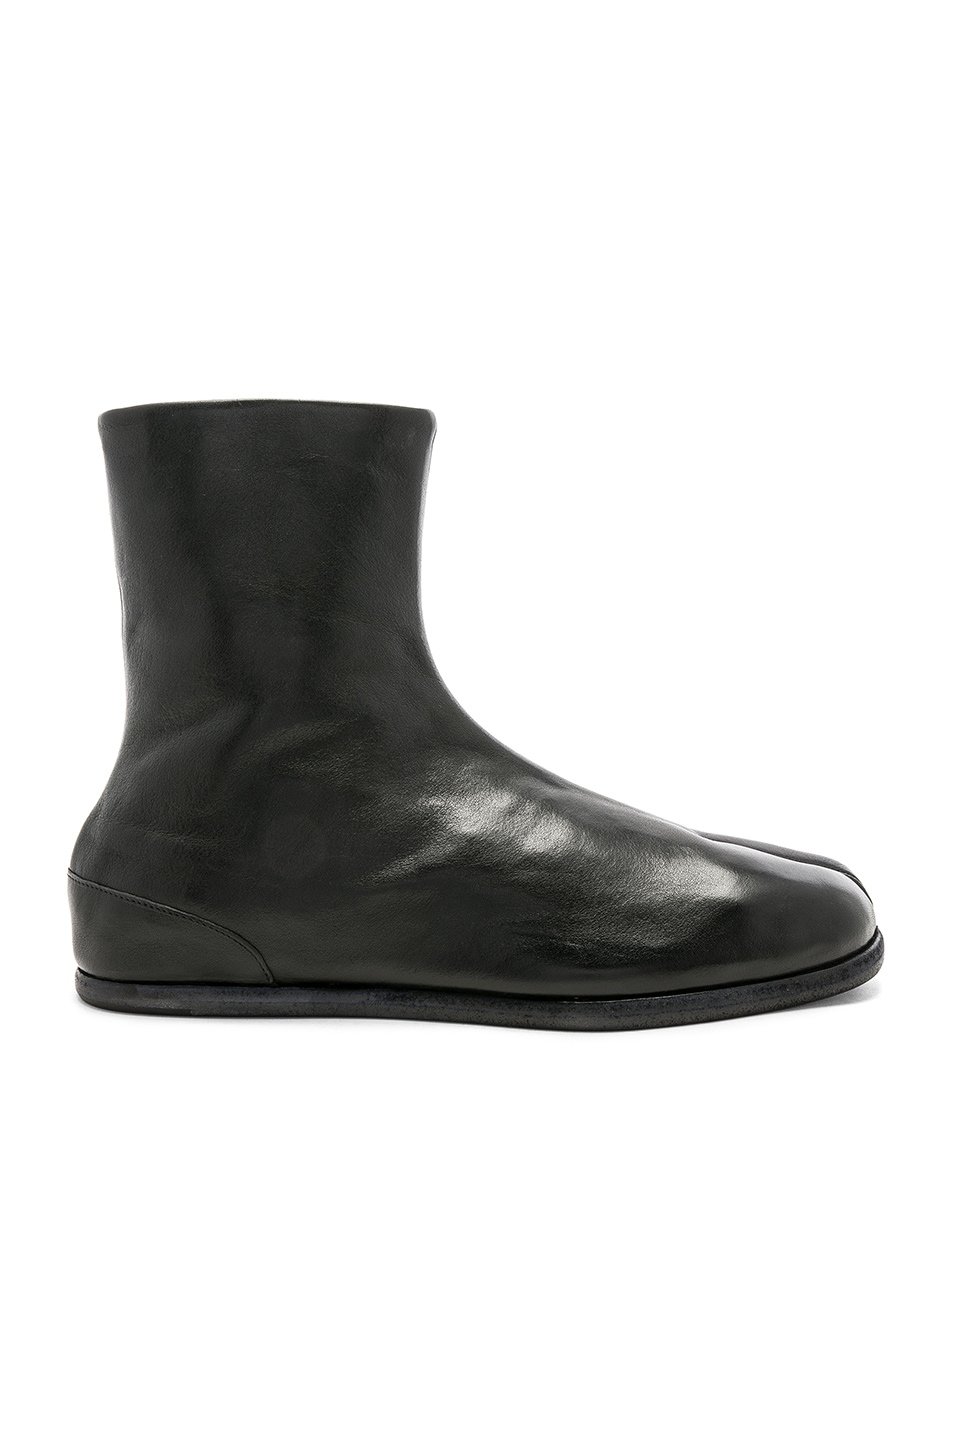 Image 2 of Maison Margiela Leather Tabi Boots in Black